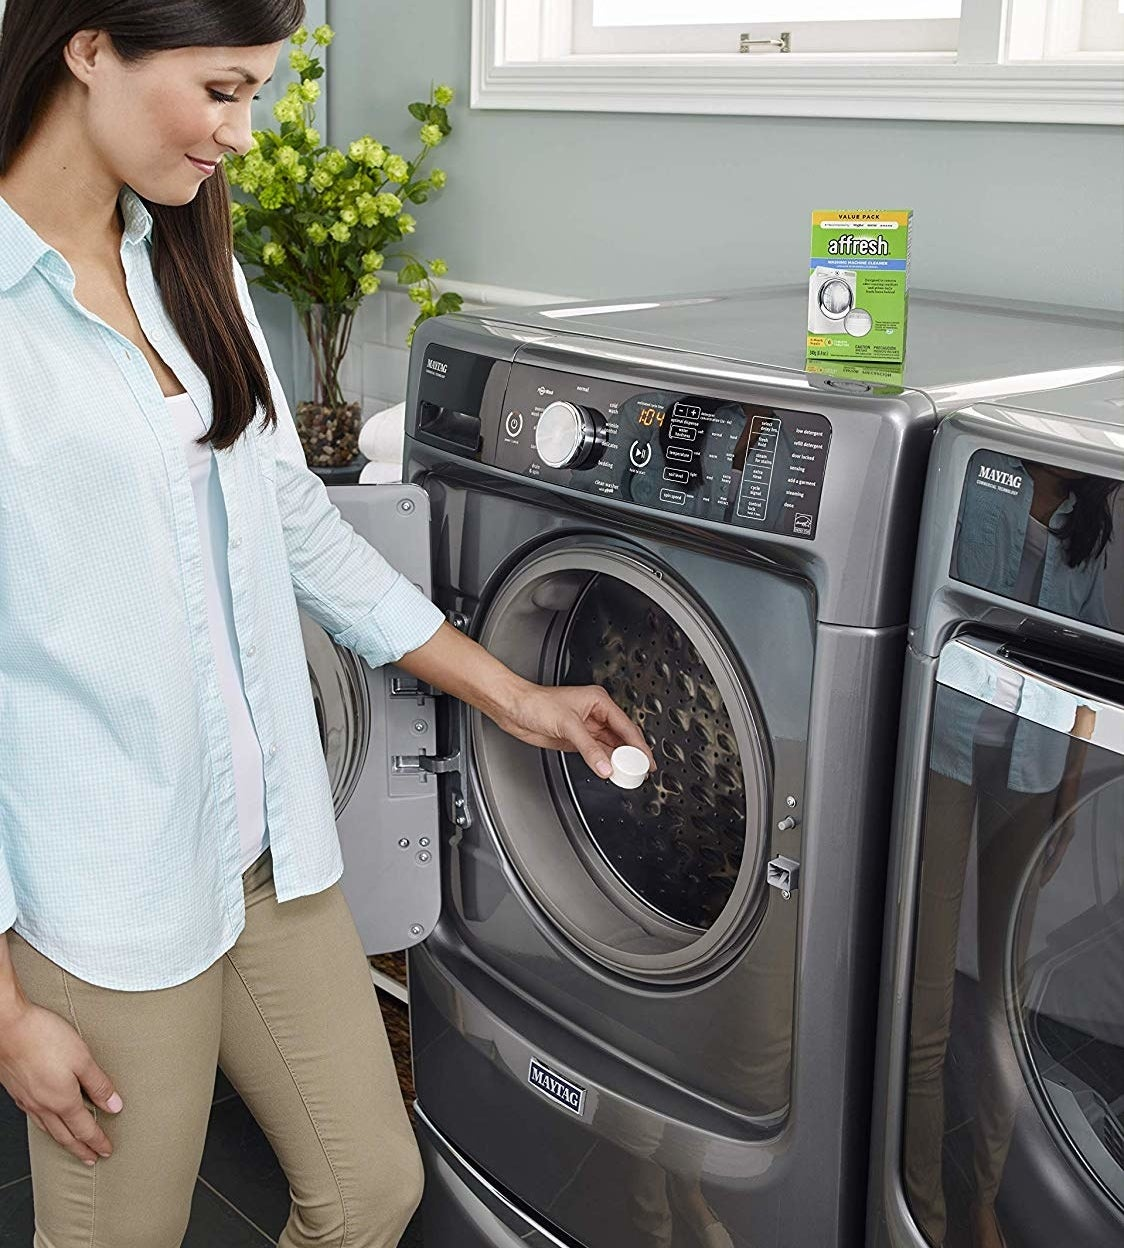 a hand holding a tablet above a washing machine